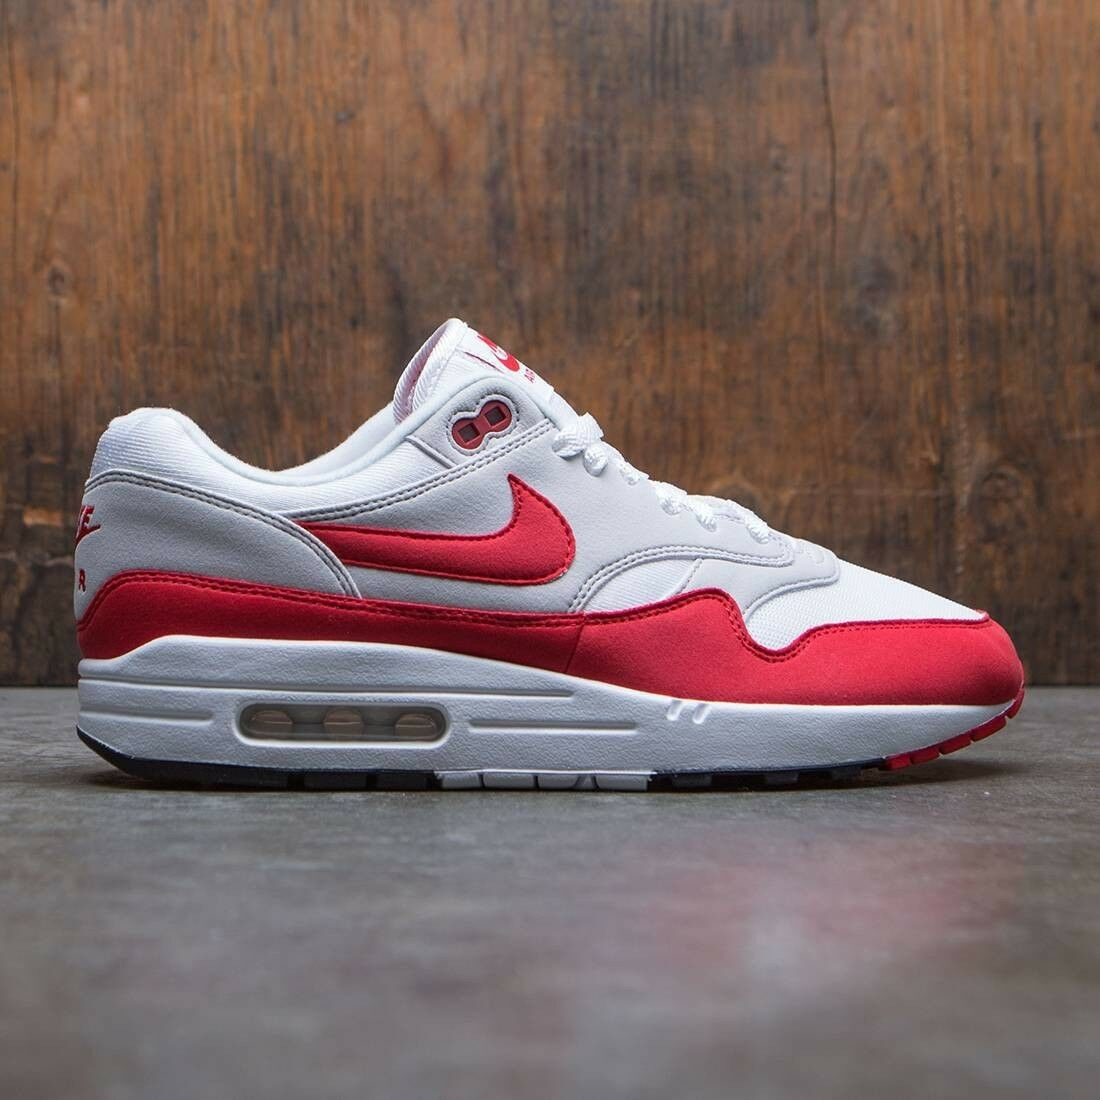 Nike Air Max 1 Anniversary Retro OG White Red Size 14. 908375-103 90 95 97 98